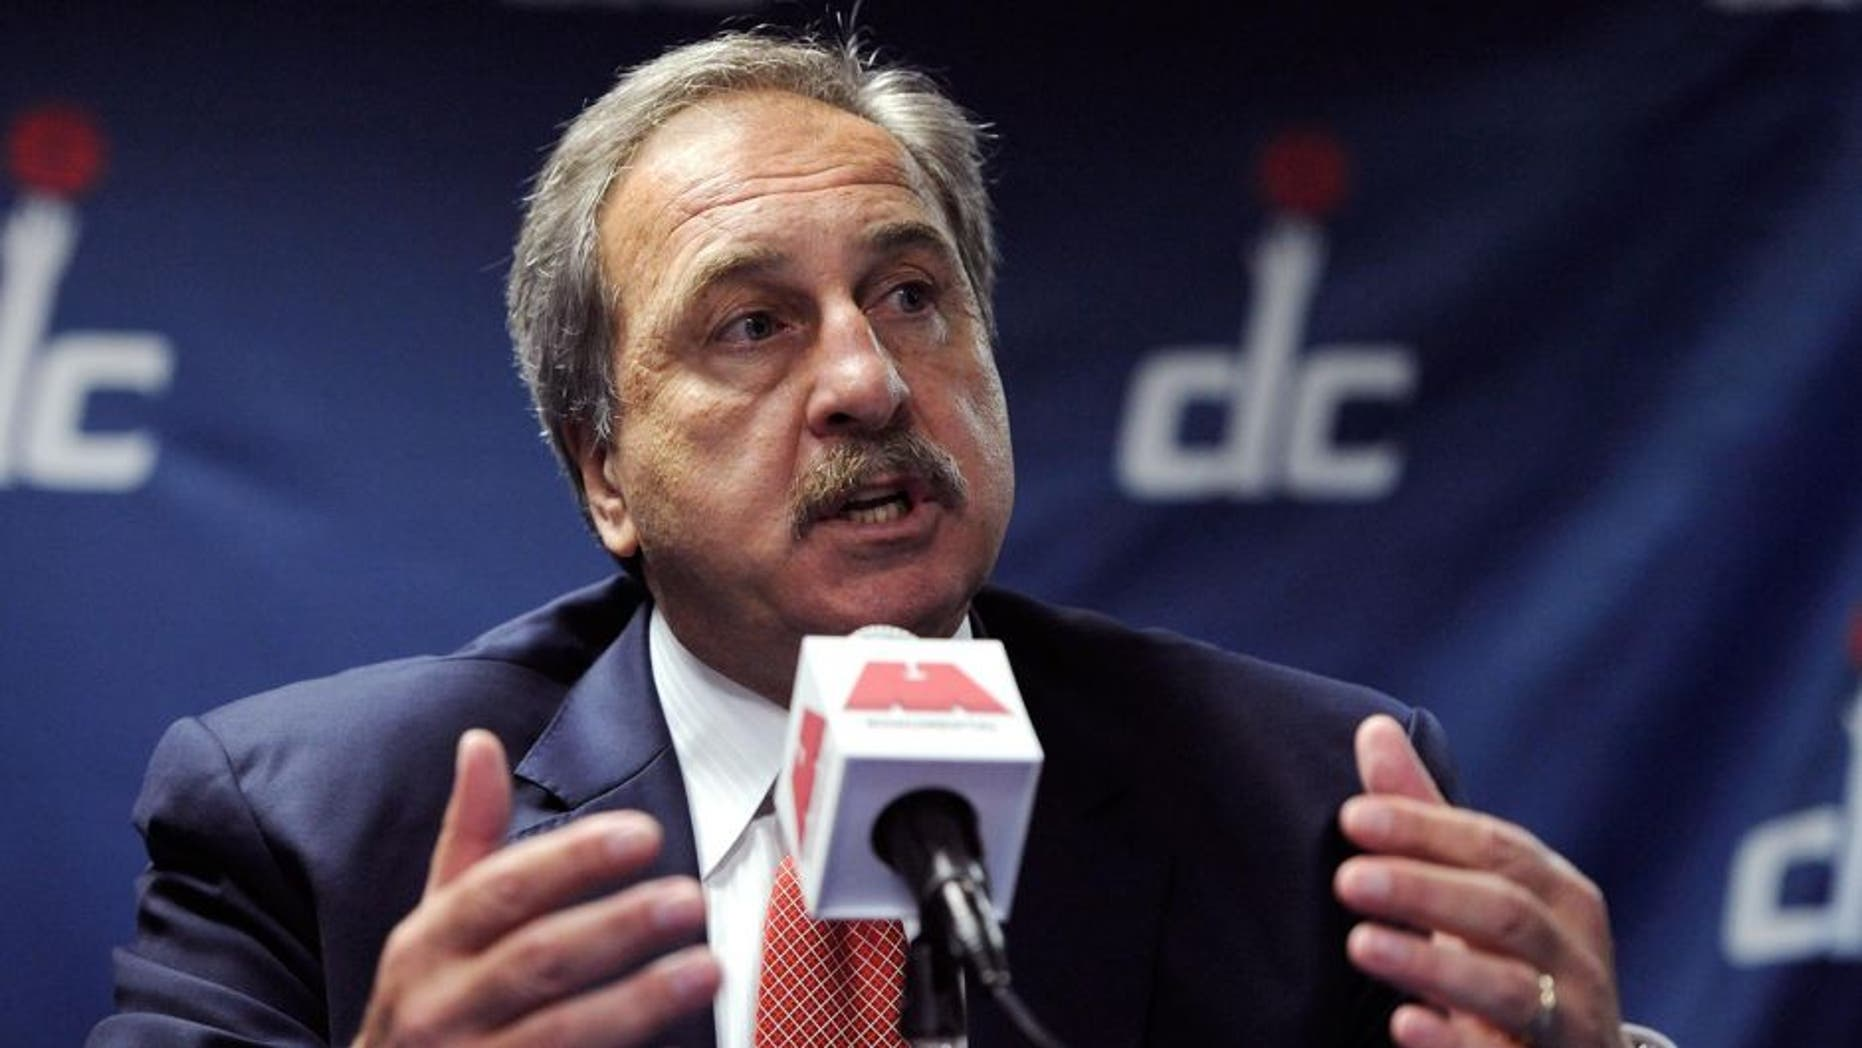 Jun 28, 2013; Washington, DC, USA; Washington Wizards general manager Ernie Grunfeld speaks to the media during a press conference to introduce Otto Porter Jr. at Verizon Center. Porter was selected with the third pick of the first round in the 2013 NBA Draft. Mandatory Credit: Rafael Suanes-USA TODAY Sports